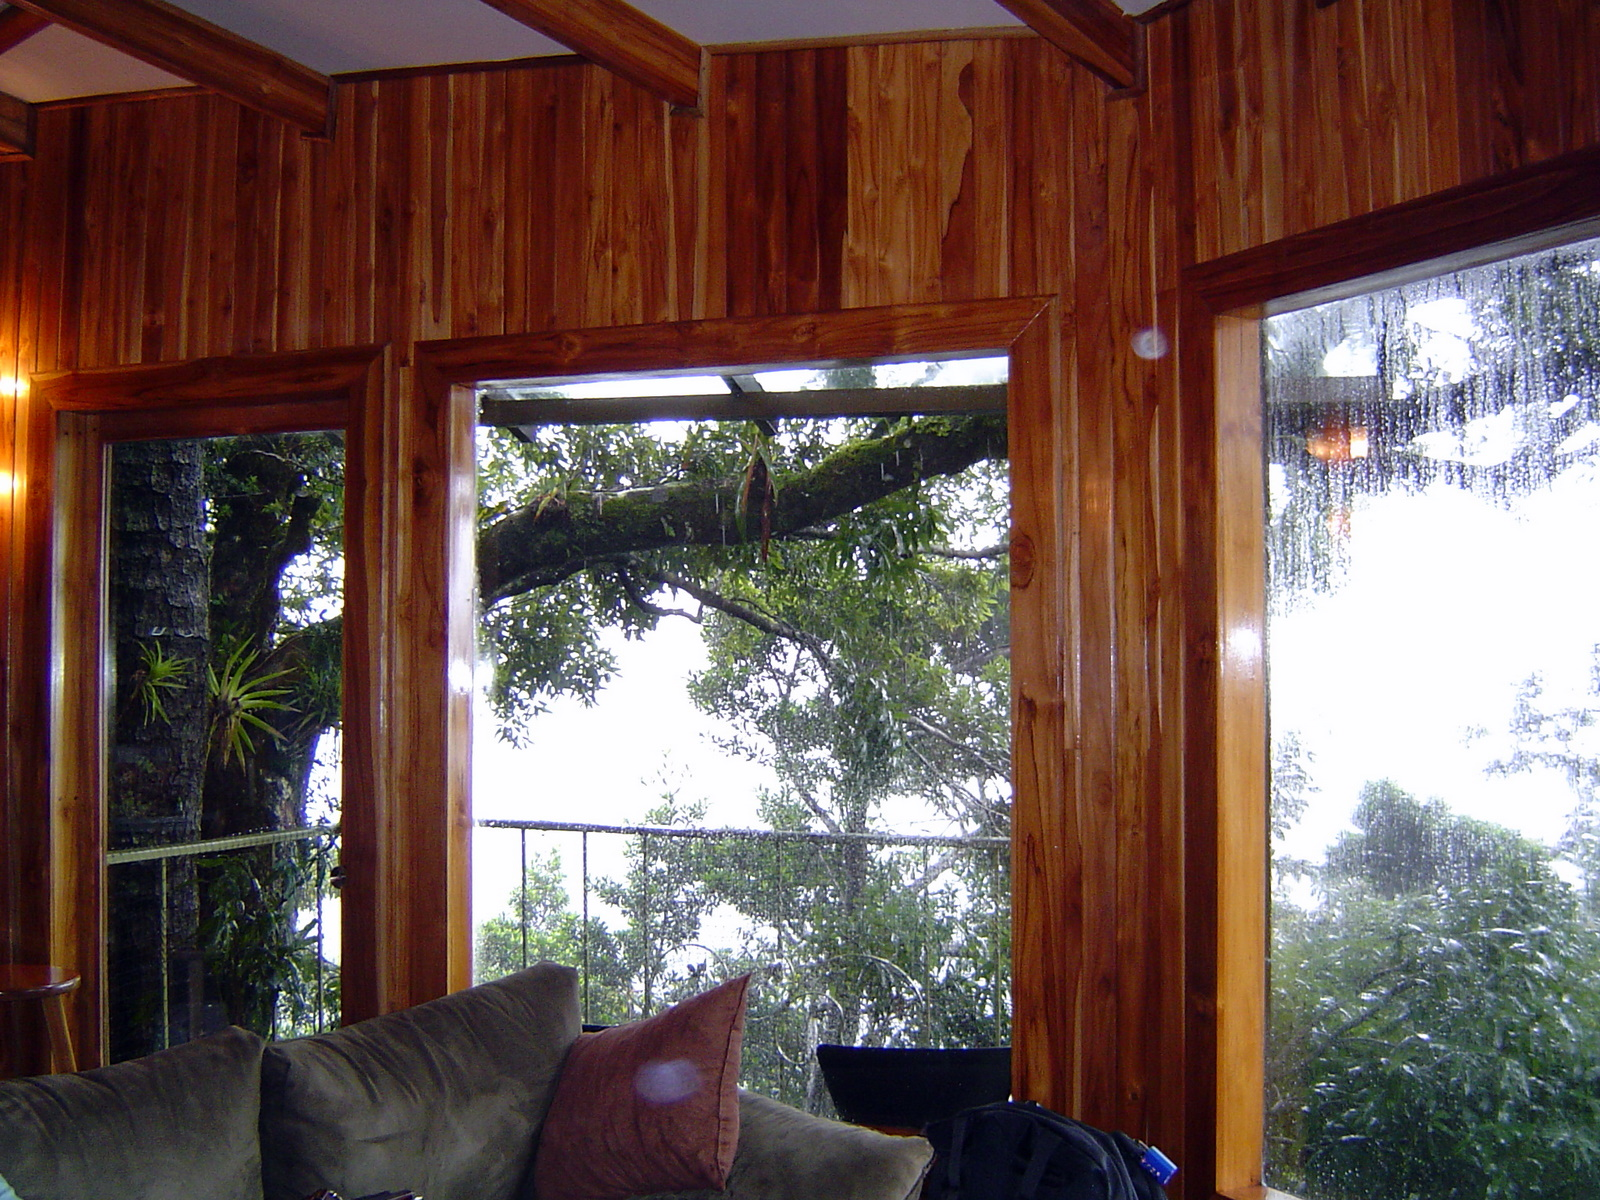 Hidden Canopy Treehouses Boutique Hotel. Labels Costa Rica ... & What Am I Doing?: Hidden Canopy Treehouses Boutique Hotel